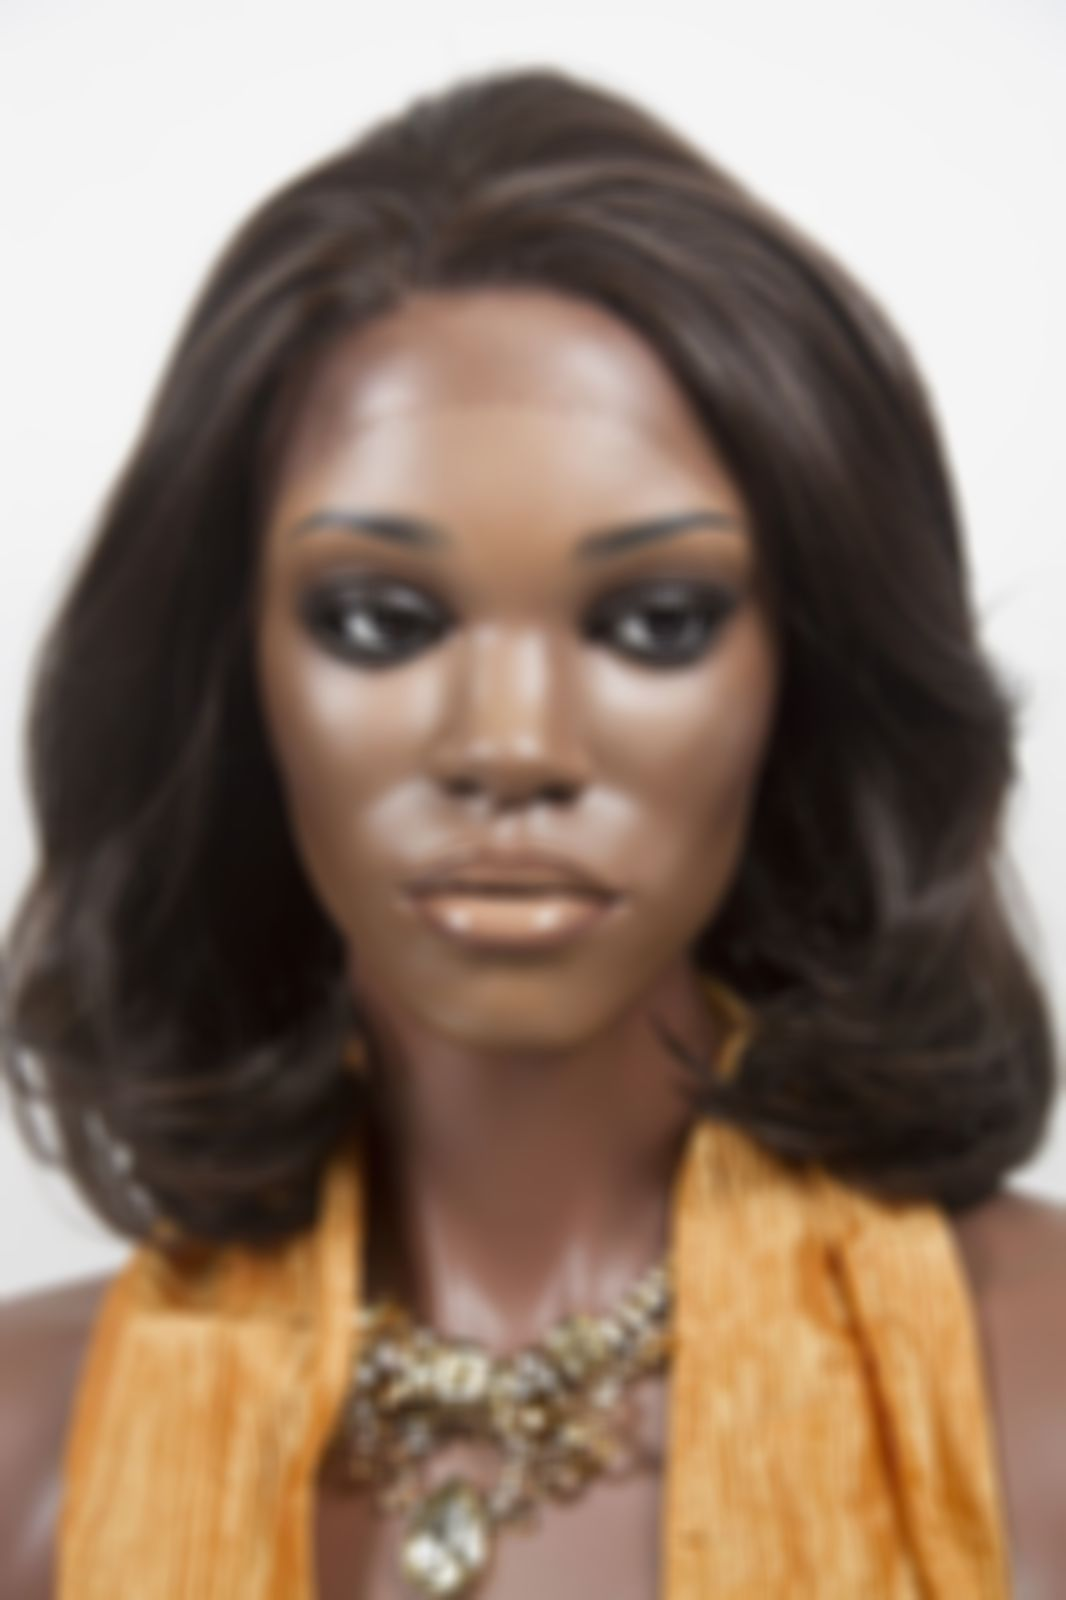 Lace Front Black Wig black lace wig american caucasian Lace hair wigs